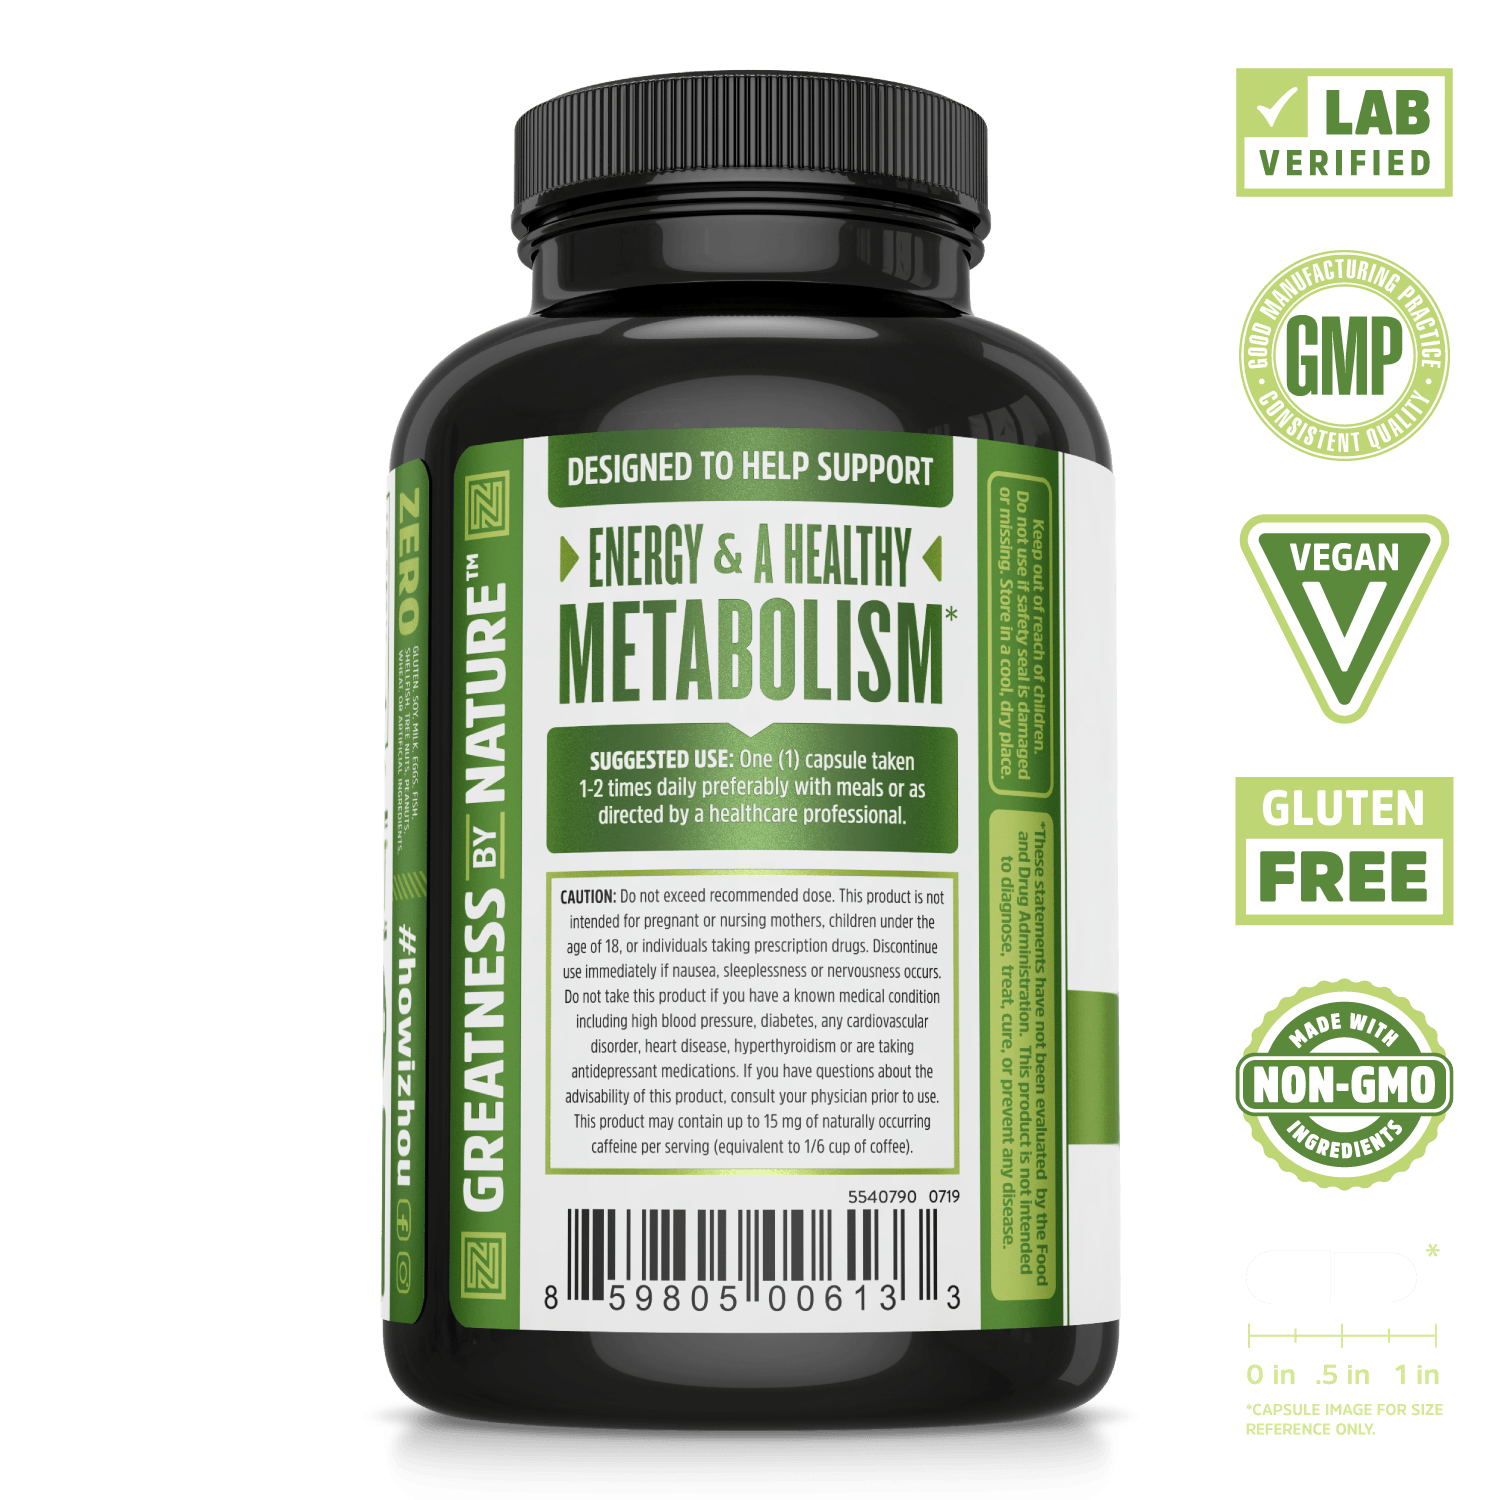 Green Tea Supplement for Gentle Caffeine. Lab verified, good manufacturing practices, vegan, gluten free, made with non-GMO ingredients